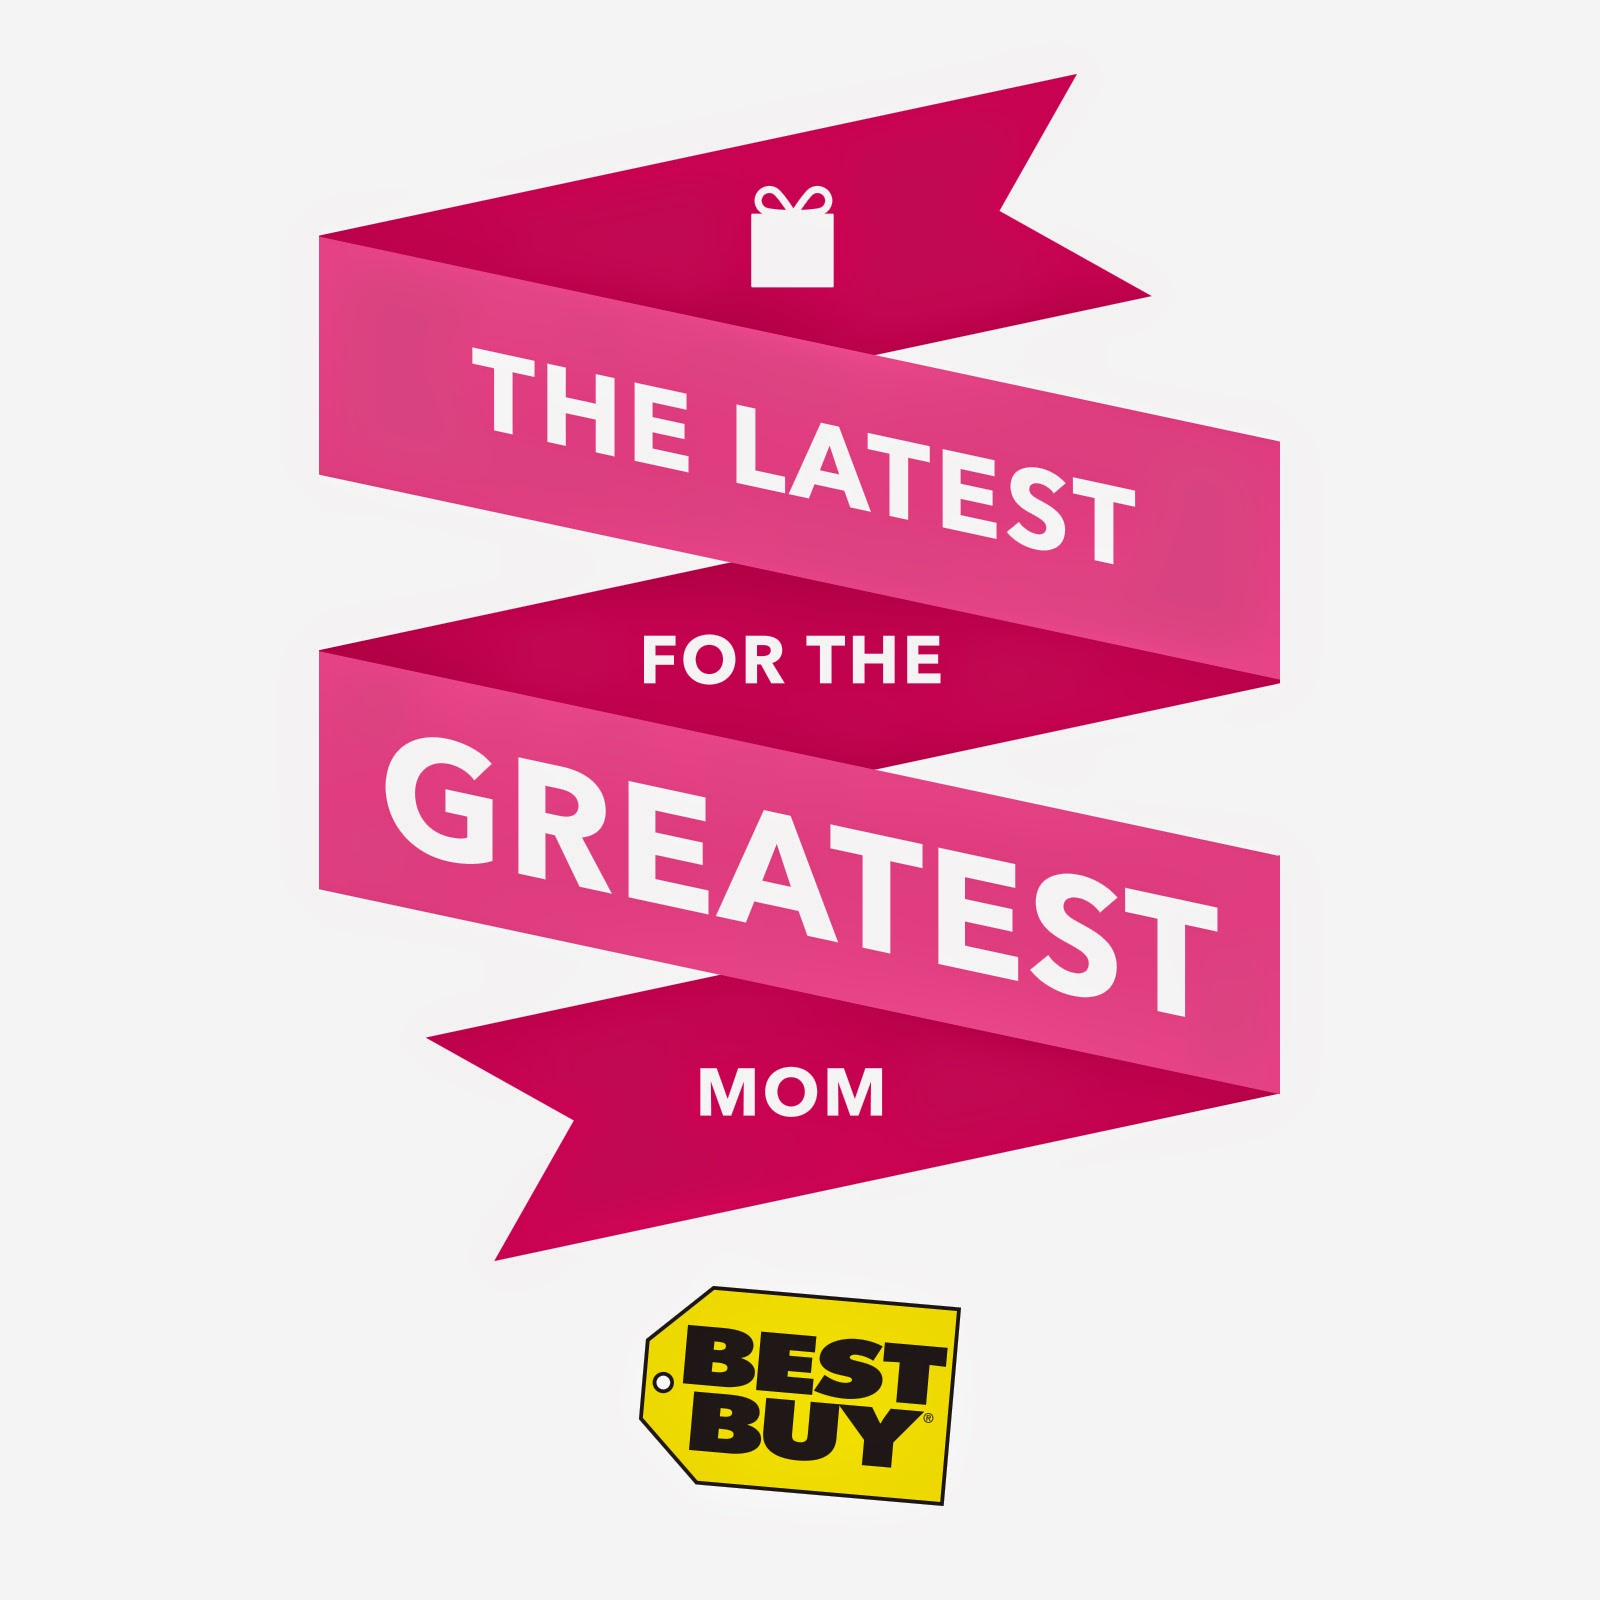 Best Buy Latest and Greatest for Mom Graphic